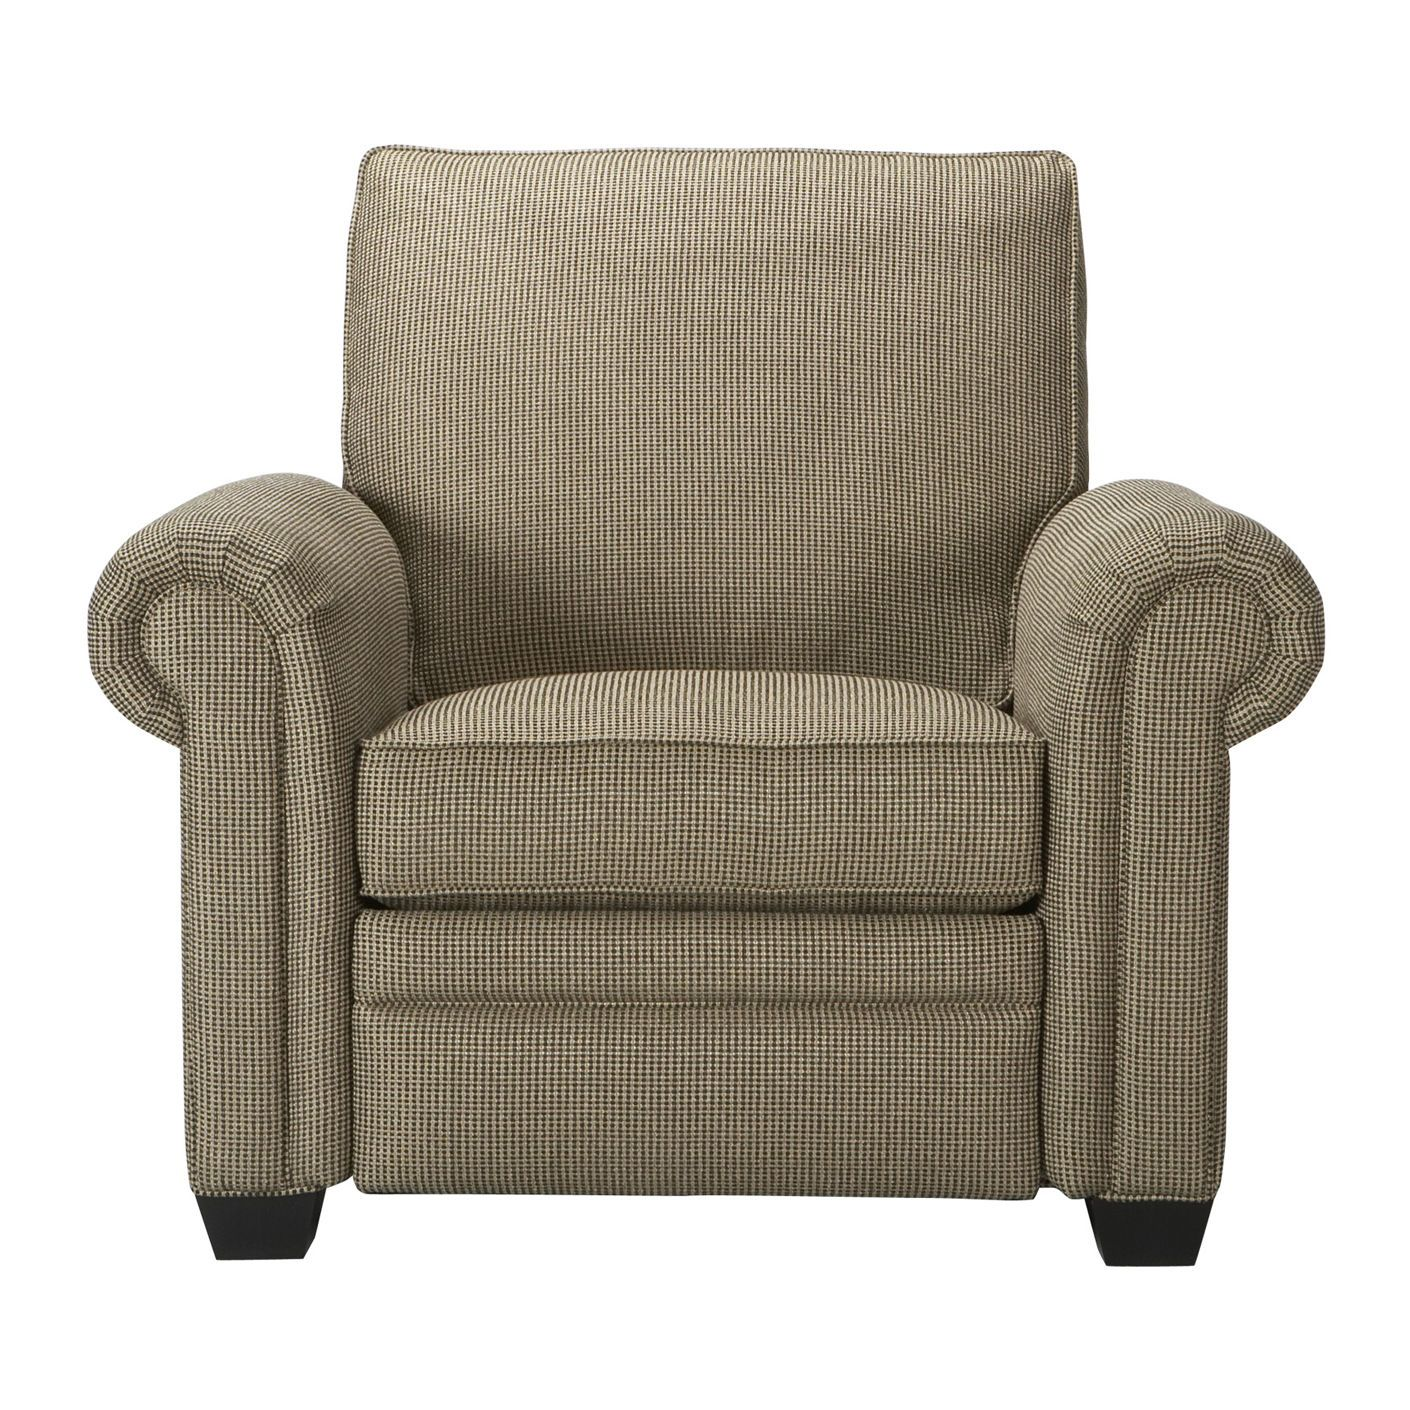 Conor Recliner Ethan Allen Us This Extends In Such A Way